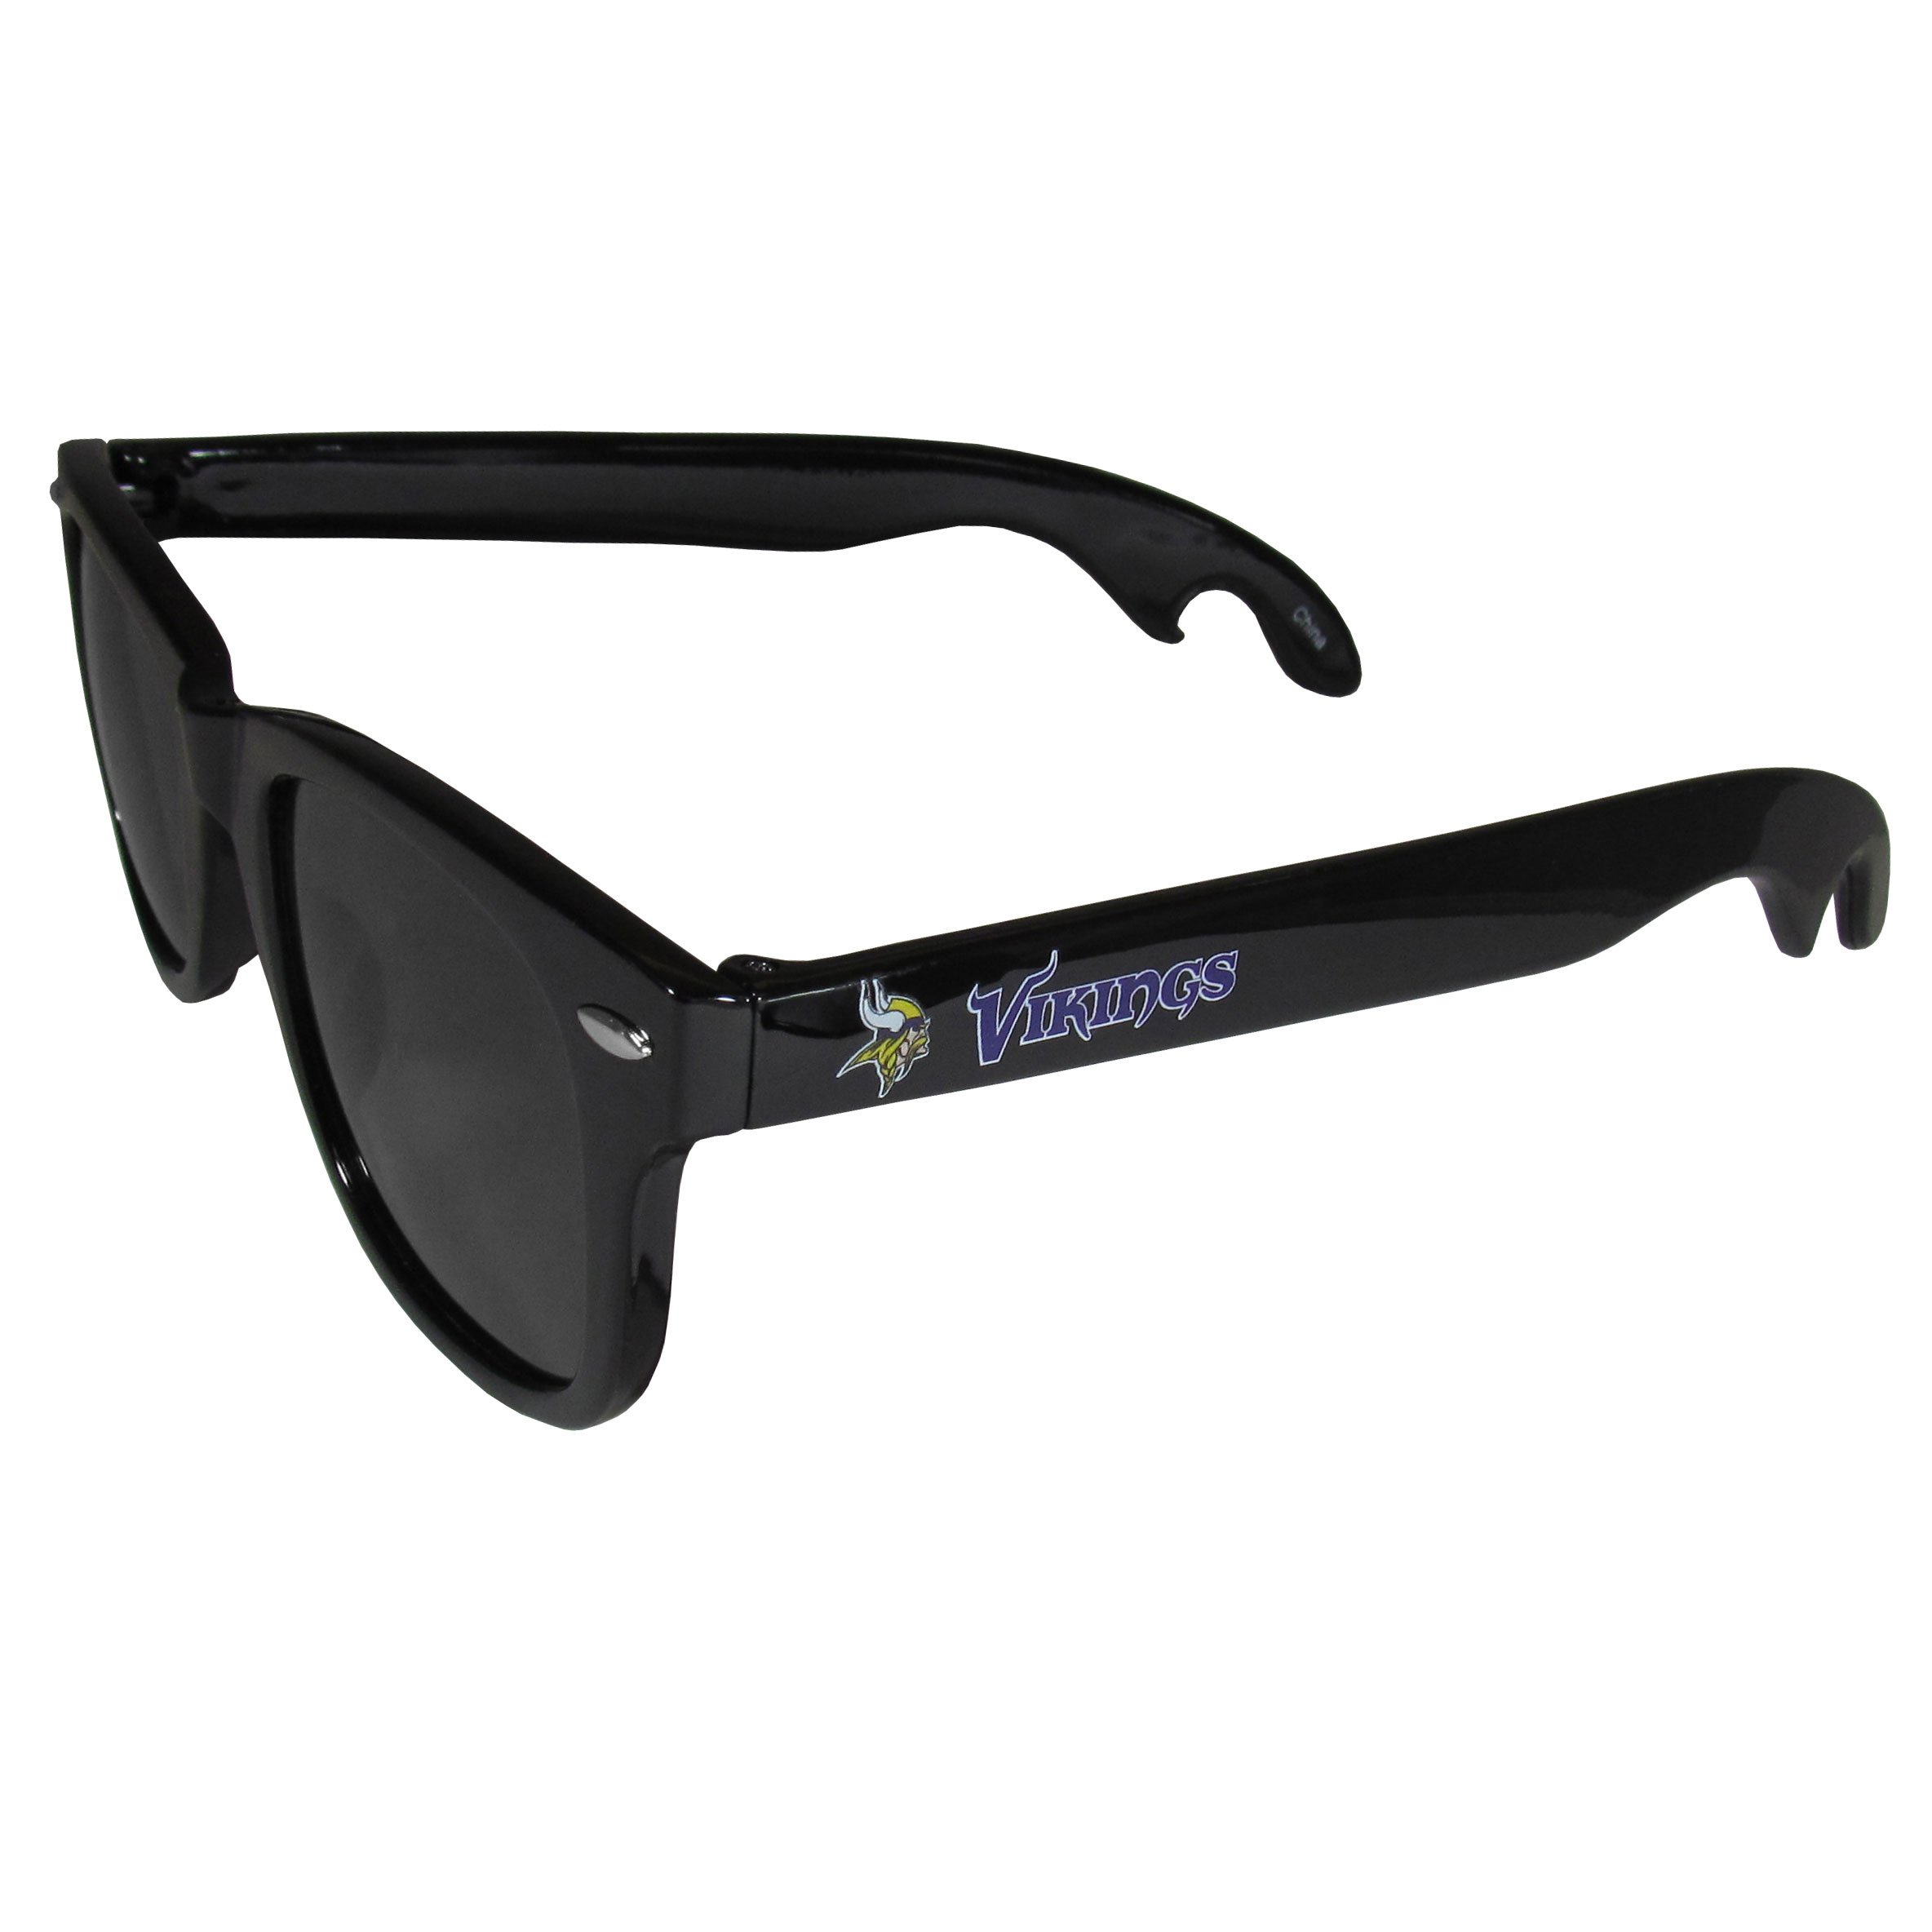 Minnesota Vikings Beachfarer Bottle Opener Sunglasses - Seriously, these sunglasses open bottles! Keep the party going with these amazing Minnesota Vikings bottle opener sunglasses. The stylish retro frames feature team designs on the arms and functional bottle openers on the end of the arms. Whether you are at the beach or having a backyard BBQ on game day, these shades will keep your eyes protected with 100% UVA/UVB protection and keep you hydrated with the handy bottle opener arms.